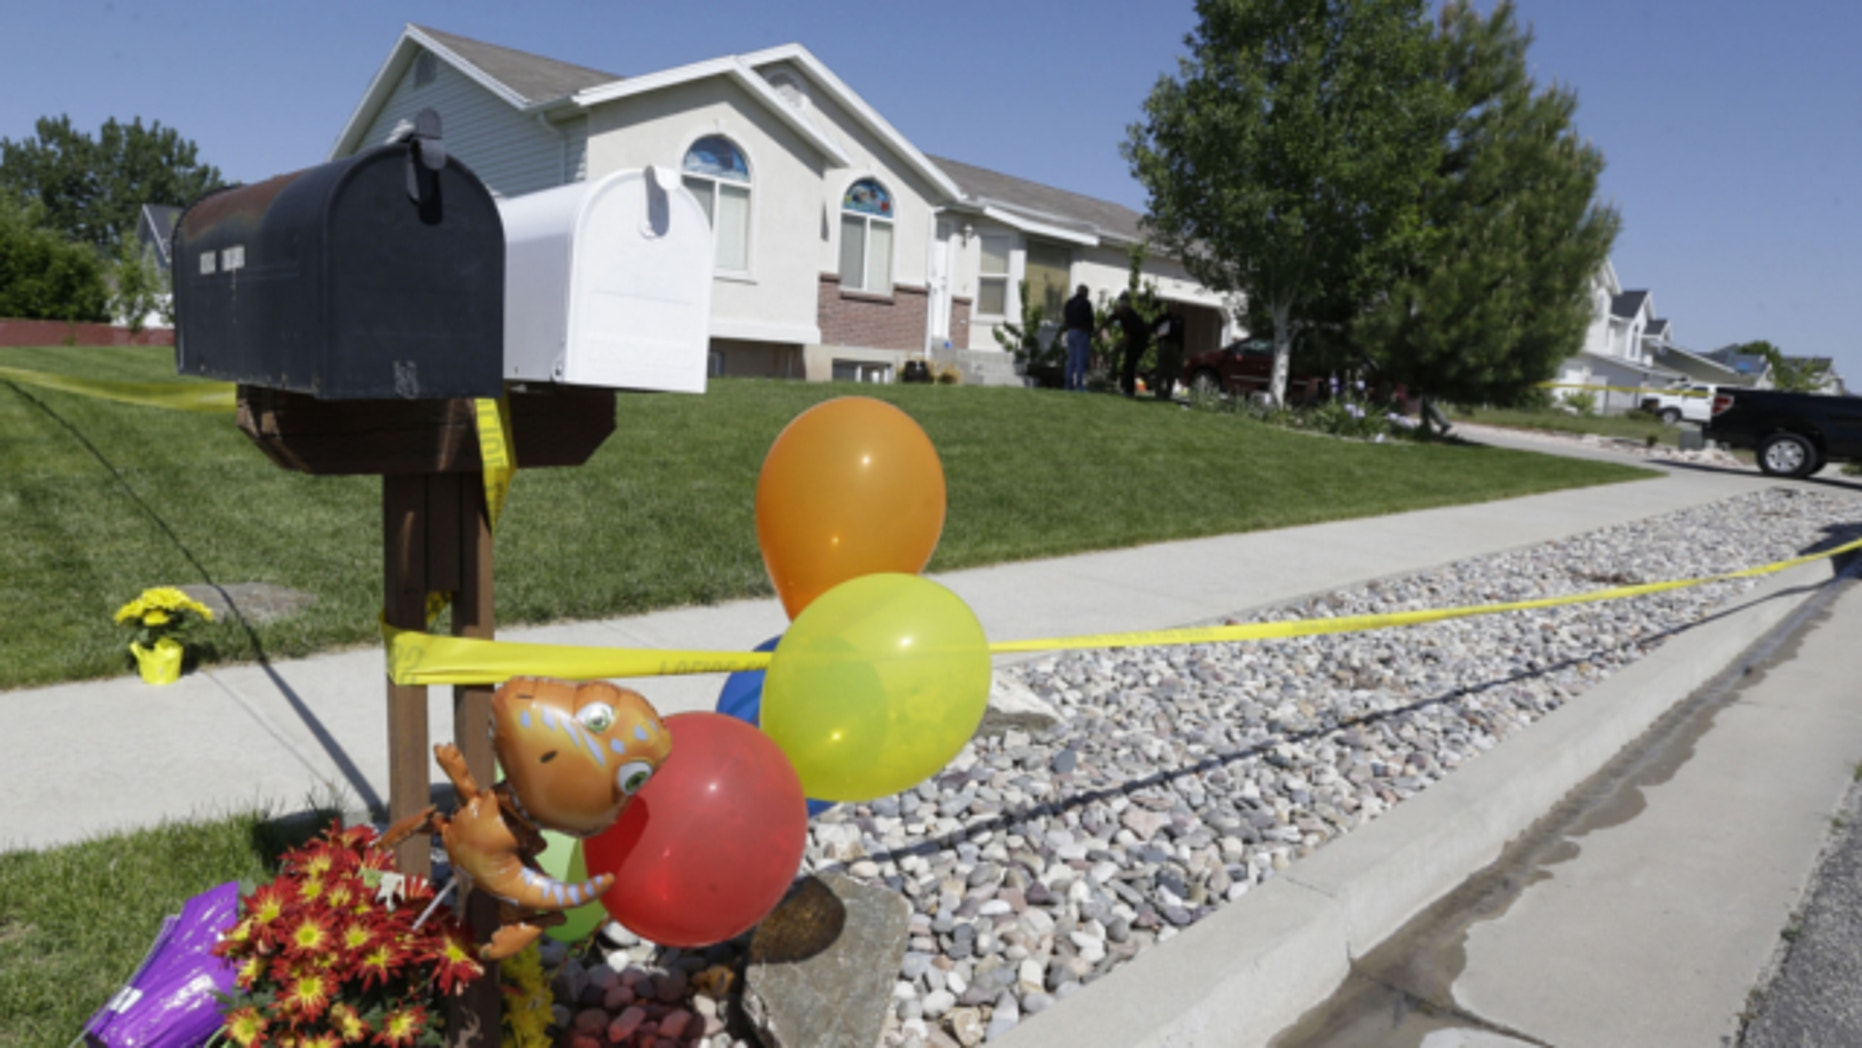 May 23, 2013: The home where two brothers were found dead is shown in West Point, Utah.